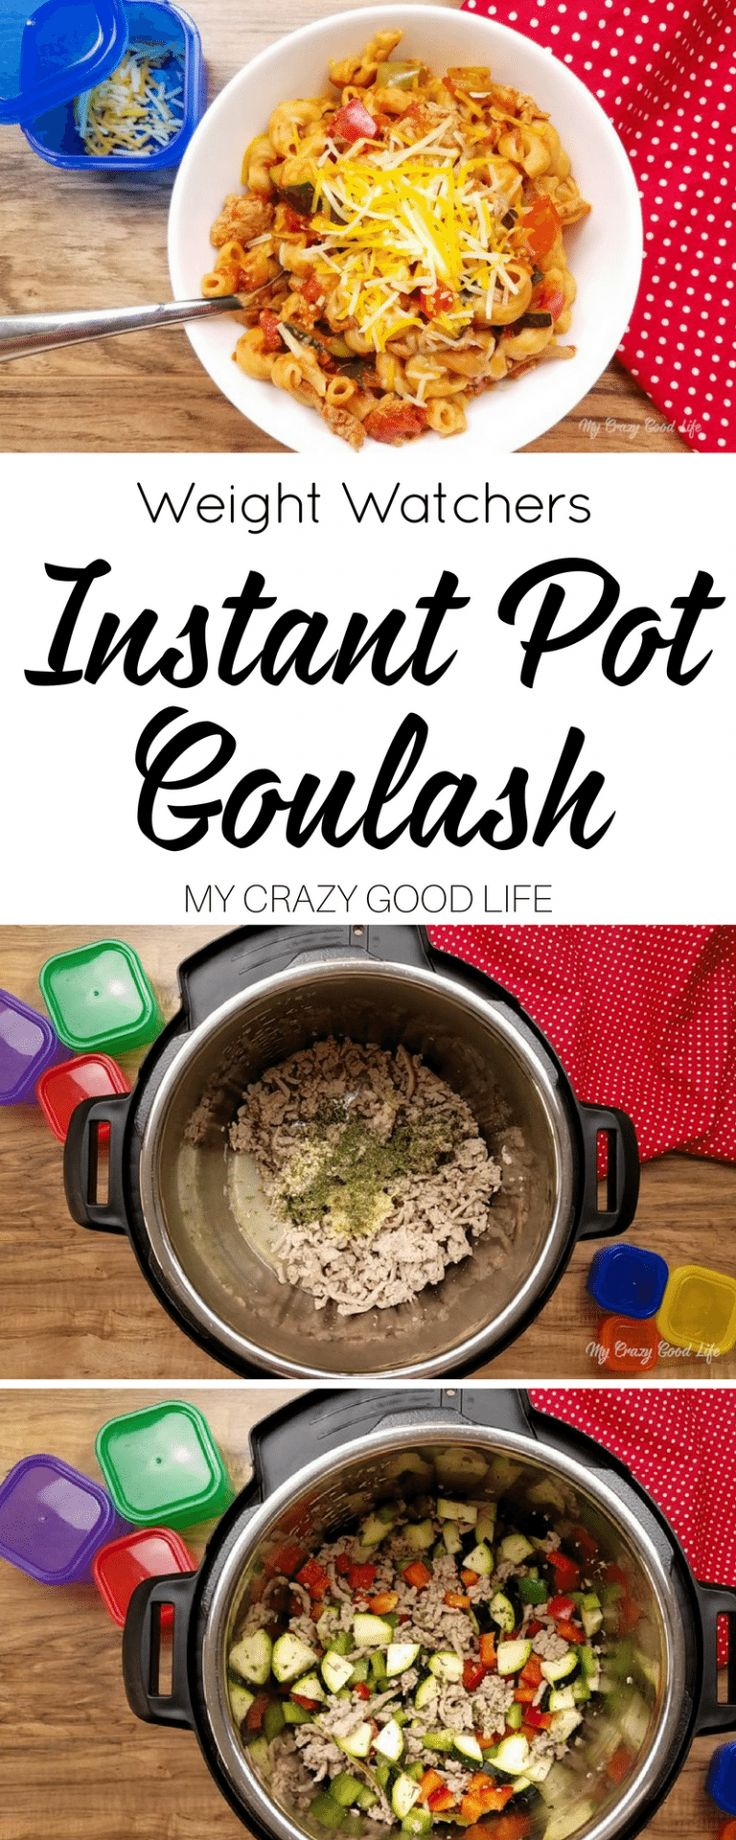 This healthier goulash recipe an easy one pot meal! Instant Pot Goulash is a fas…